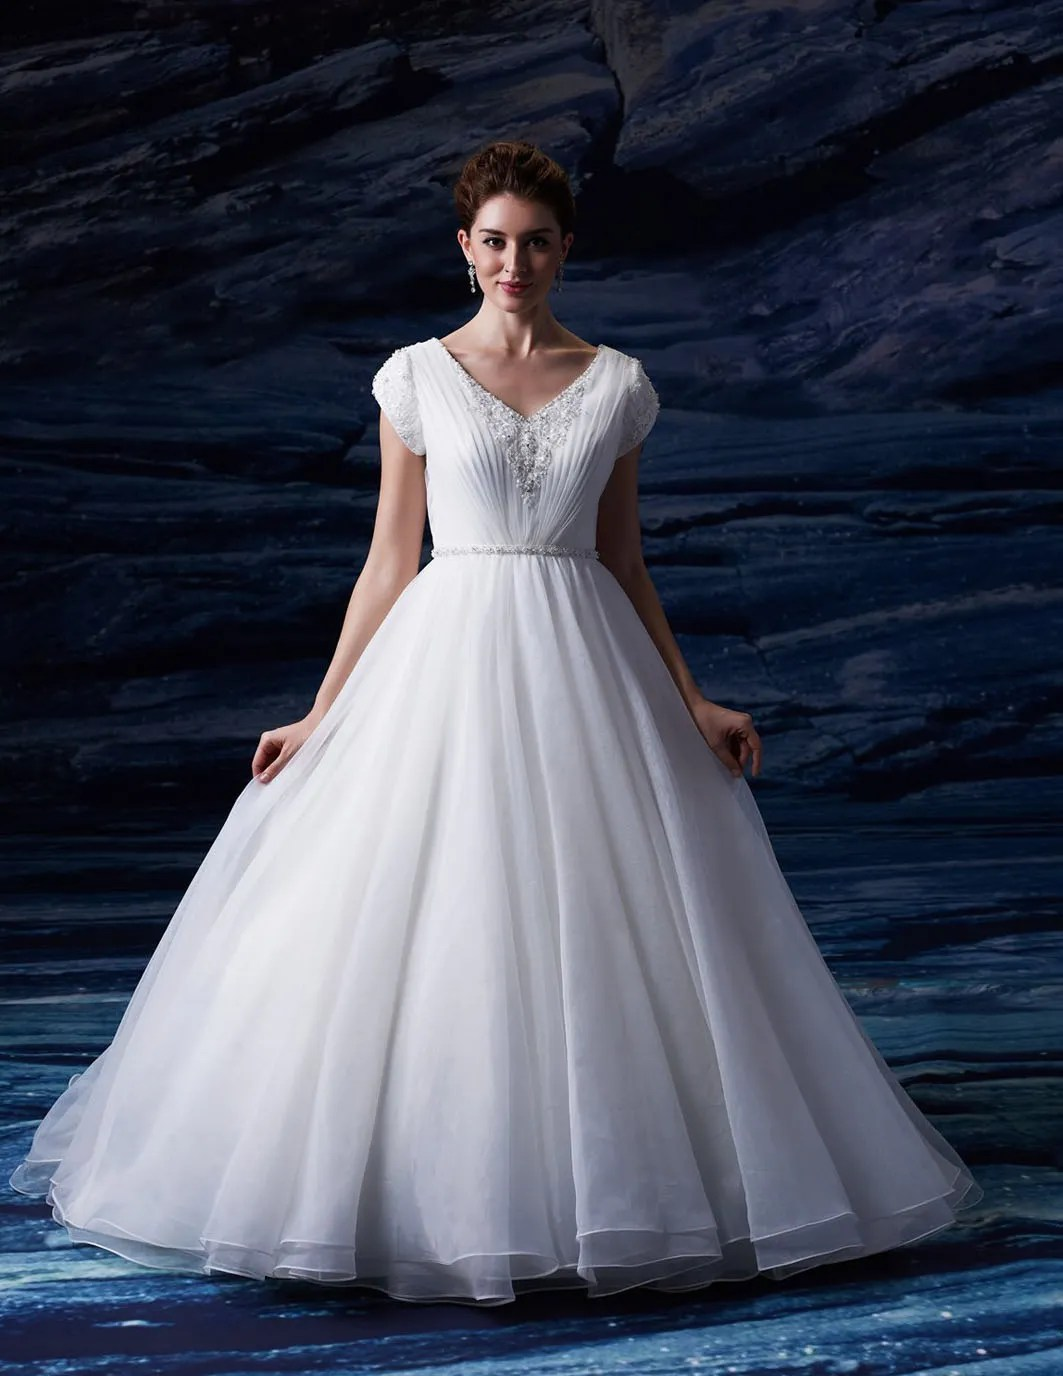 25 Modest Ball Gown Wedding Dresses - 19